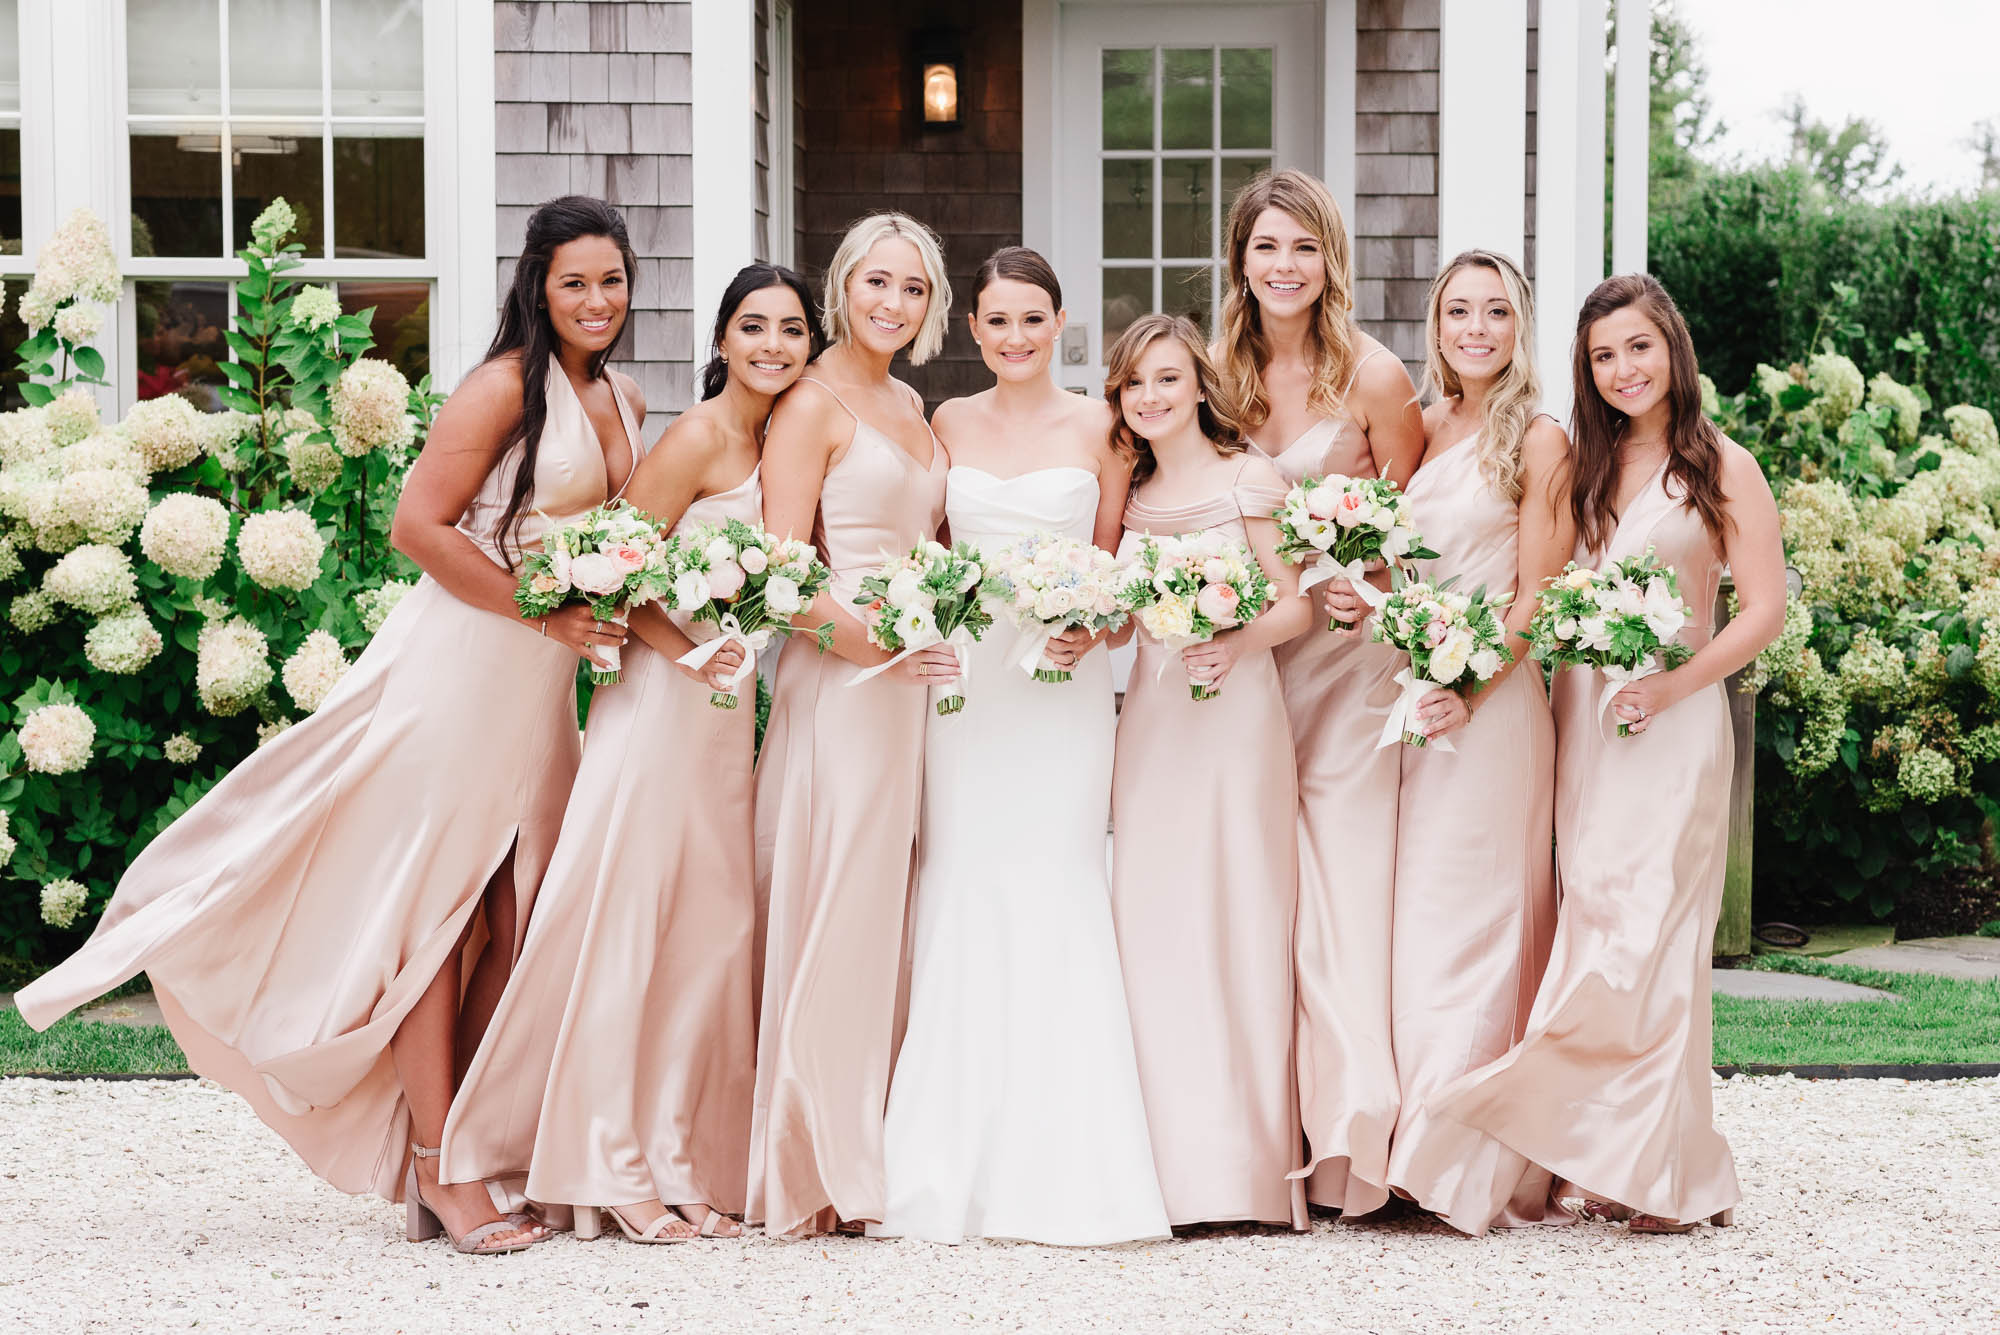 Nantucket wedding bridesmaids dresses